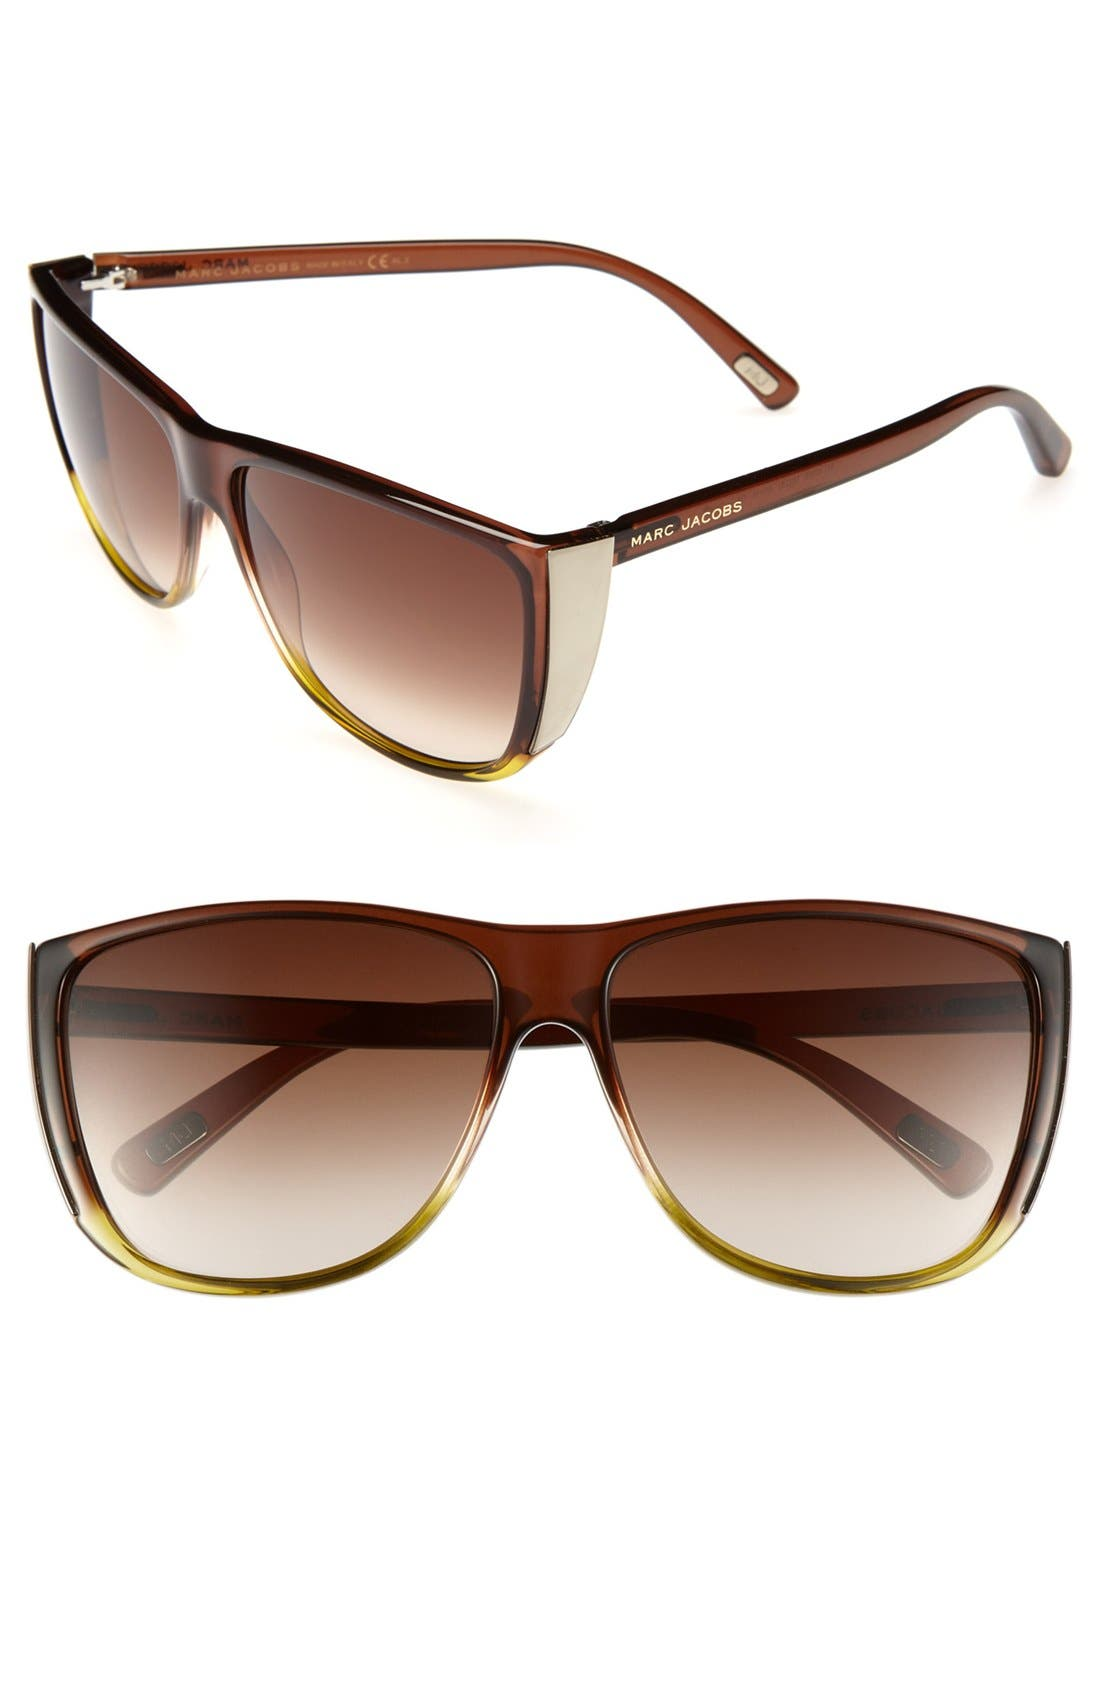 Main Image - MARC JACOBS 60mm Retro Sunglasses